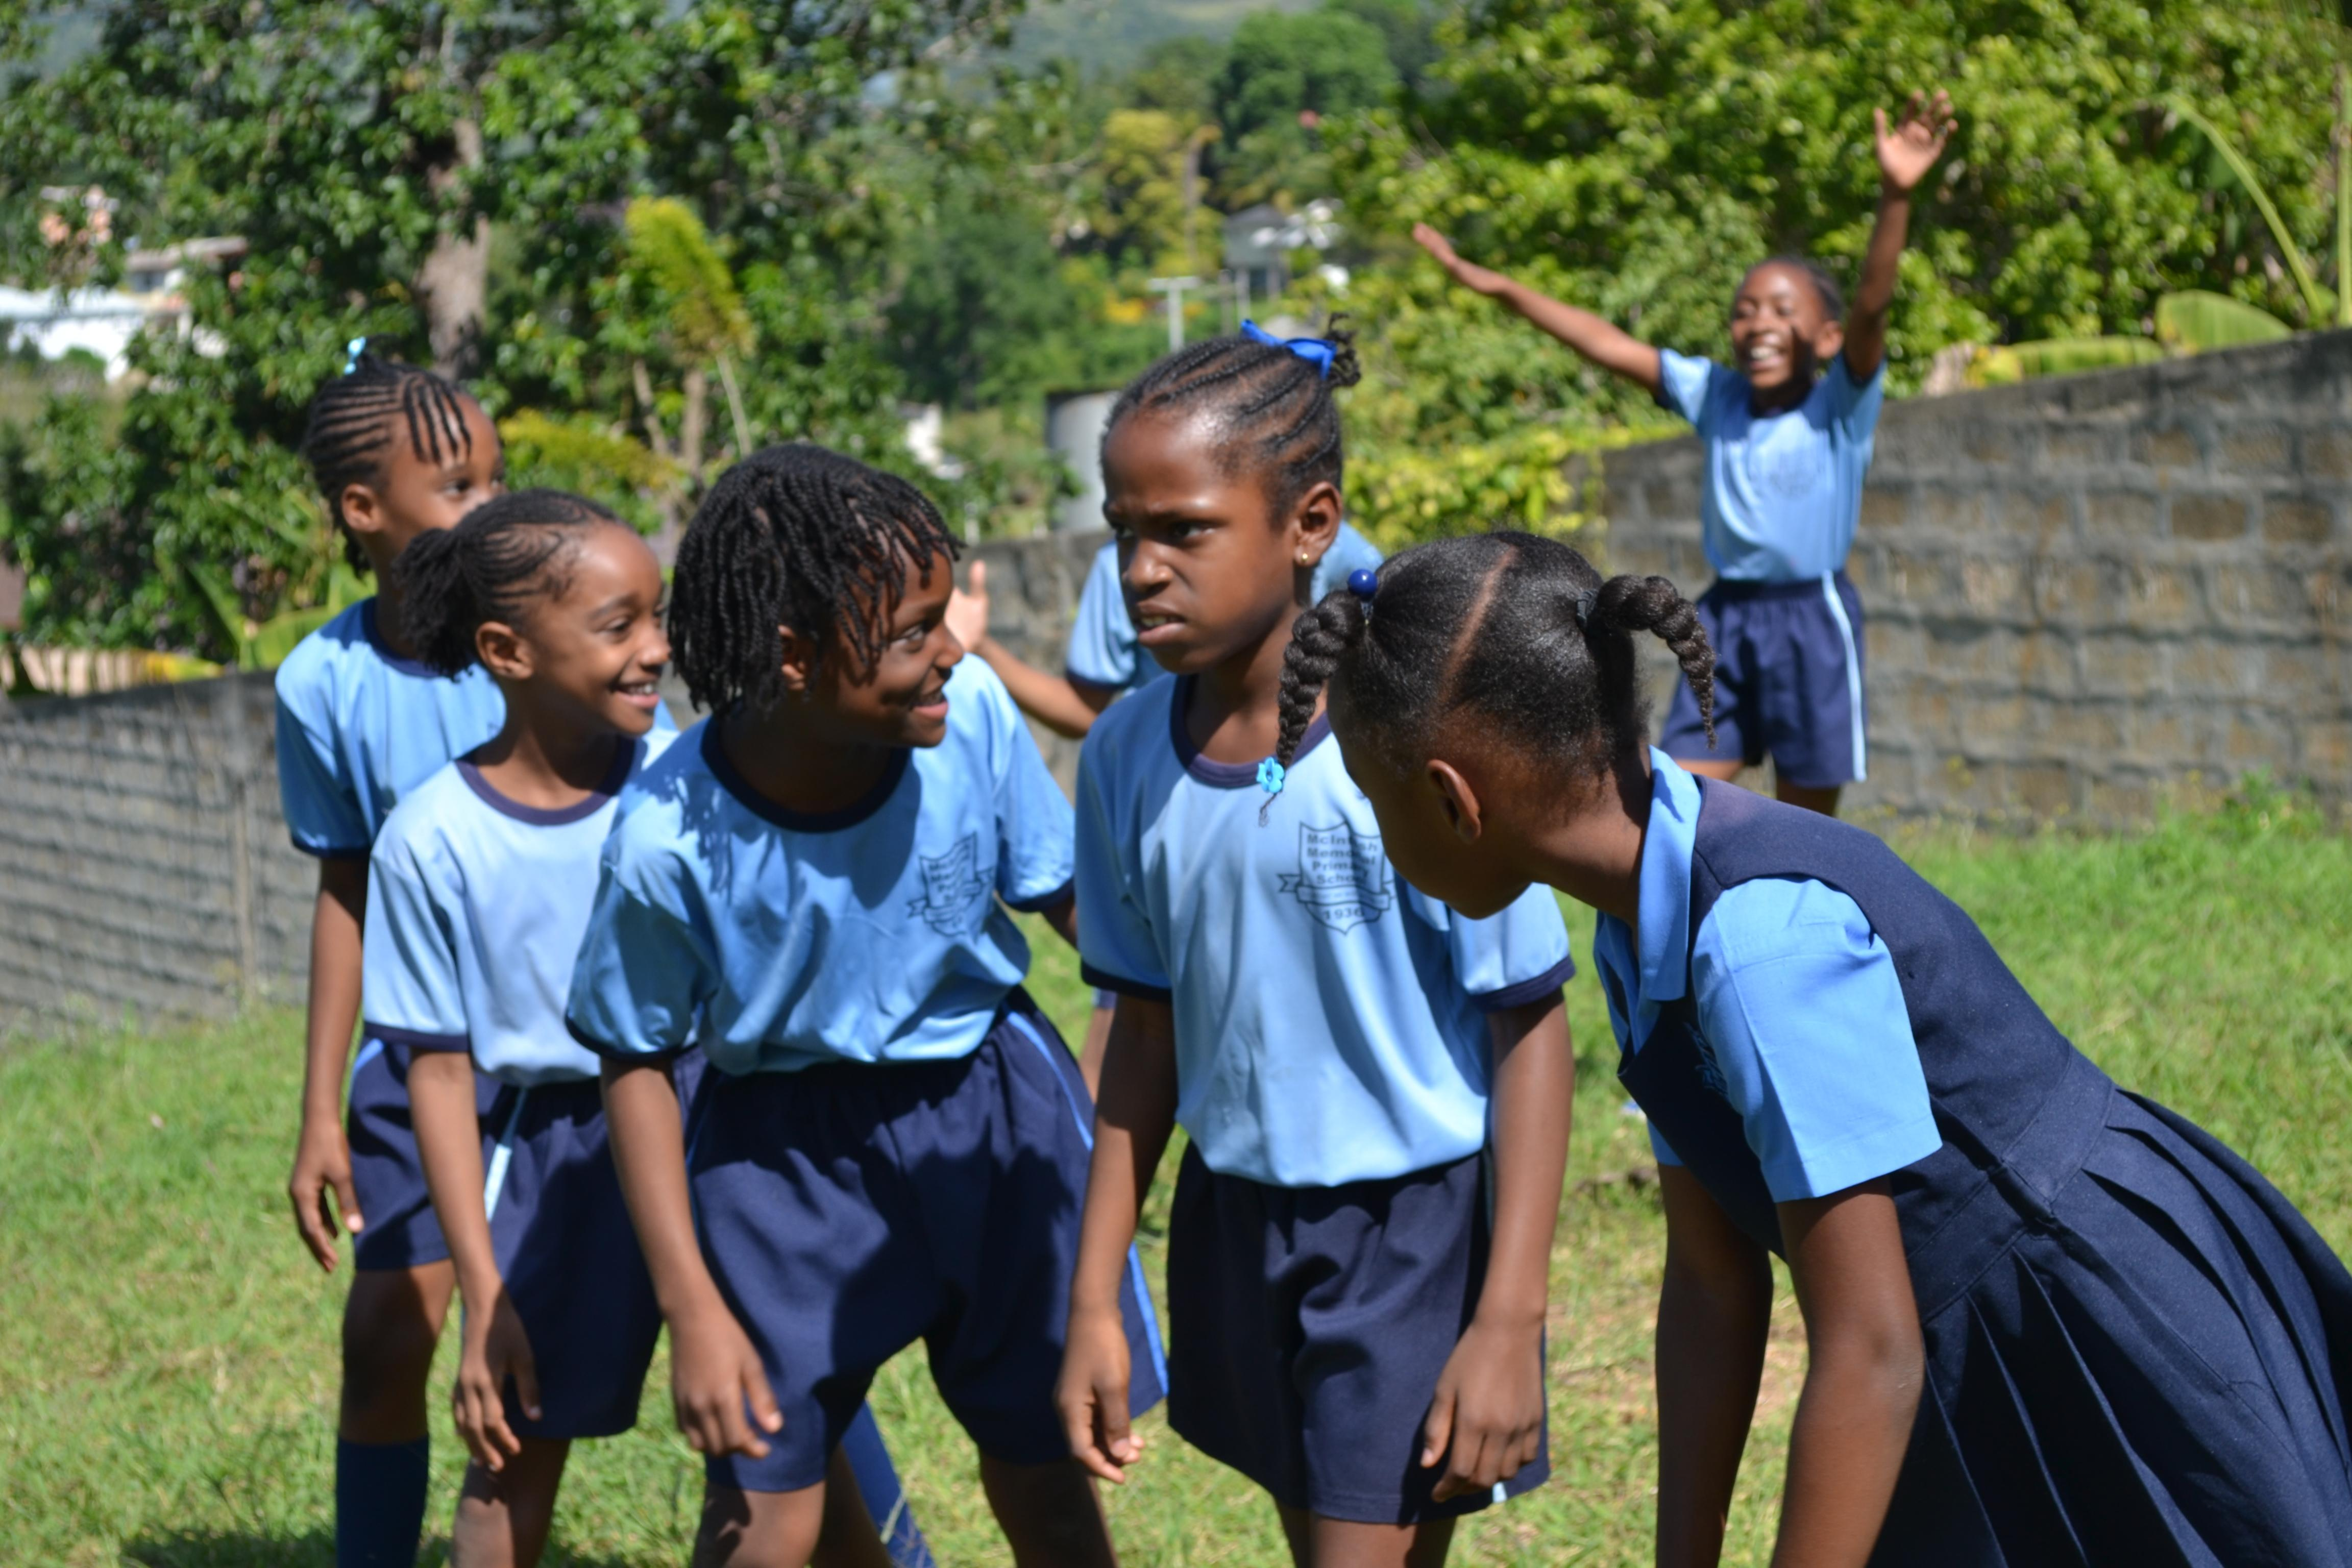 A physical education teacher gives lessons while volunteering as a sports coach in schools in Jamaica